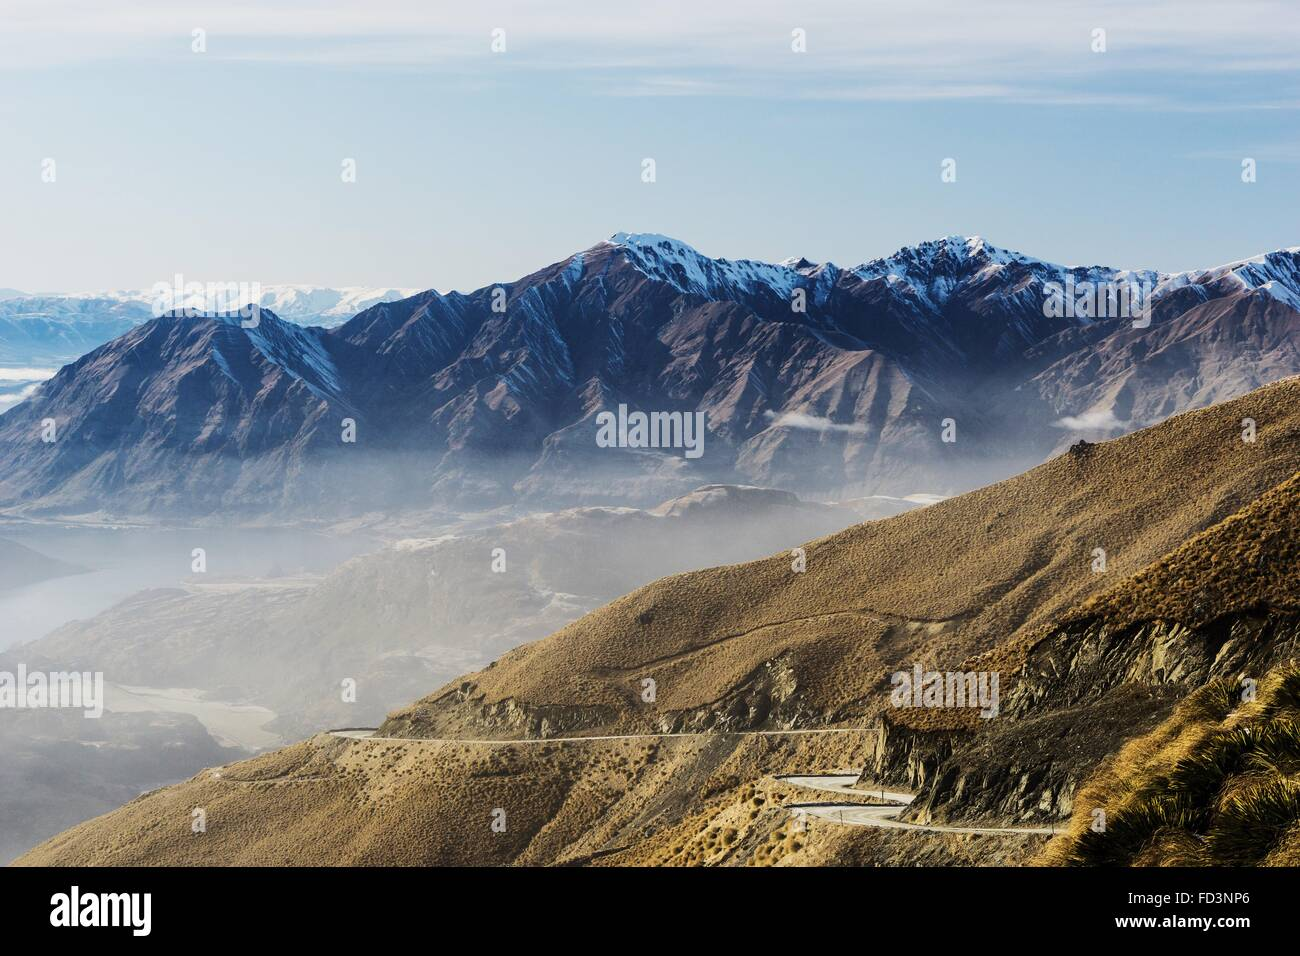 Windy road along the mountain range to Treble Cone Ski Resort, New Zealand. - Stock Image